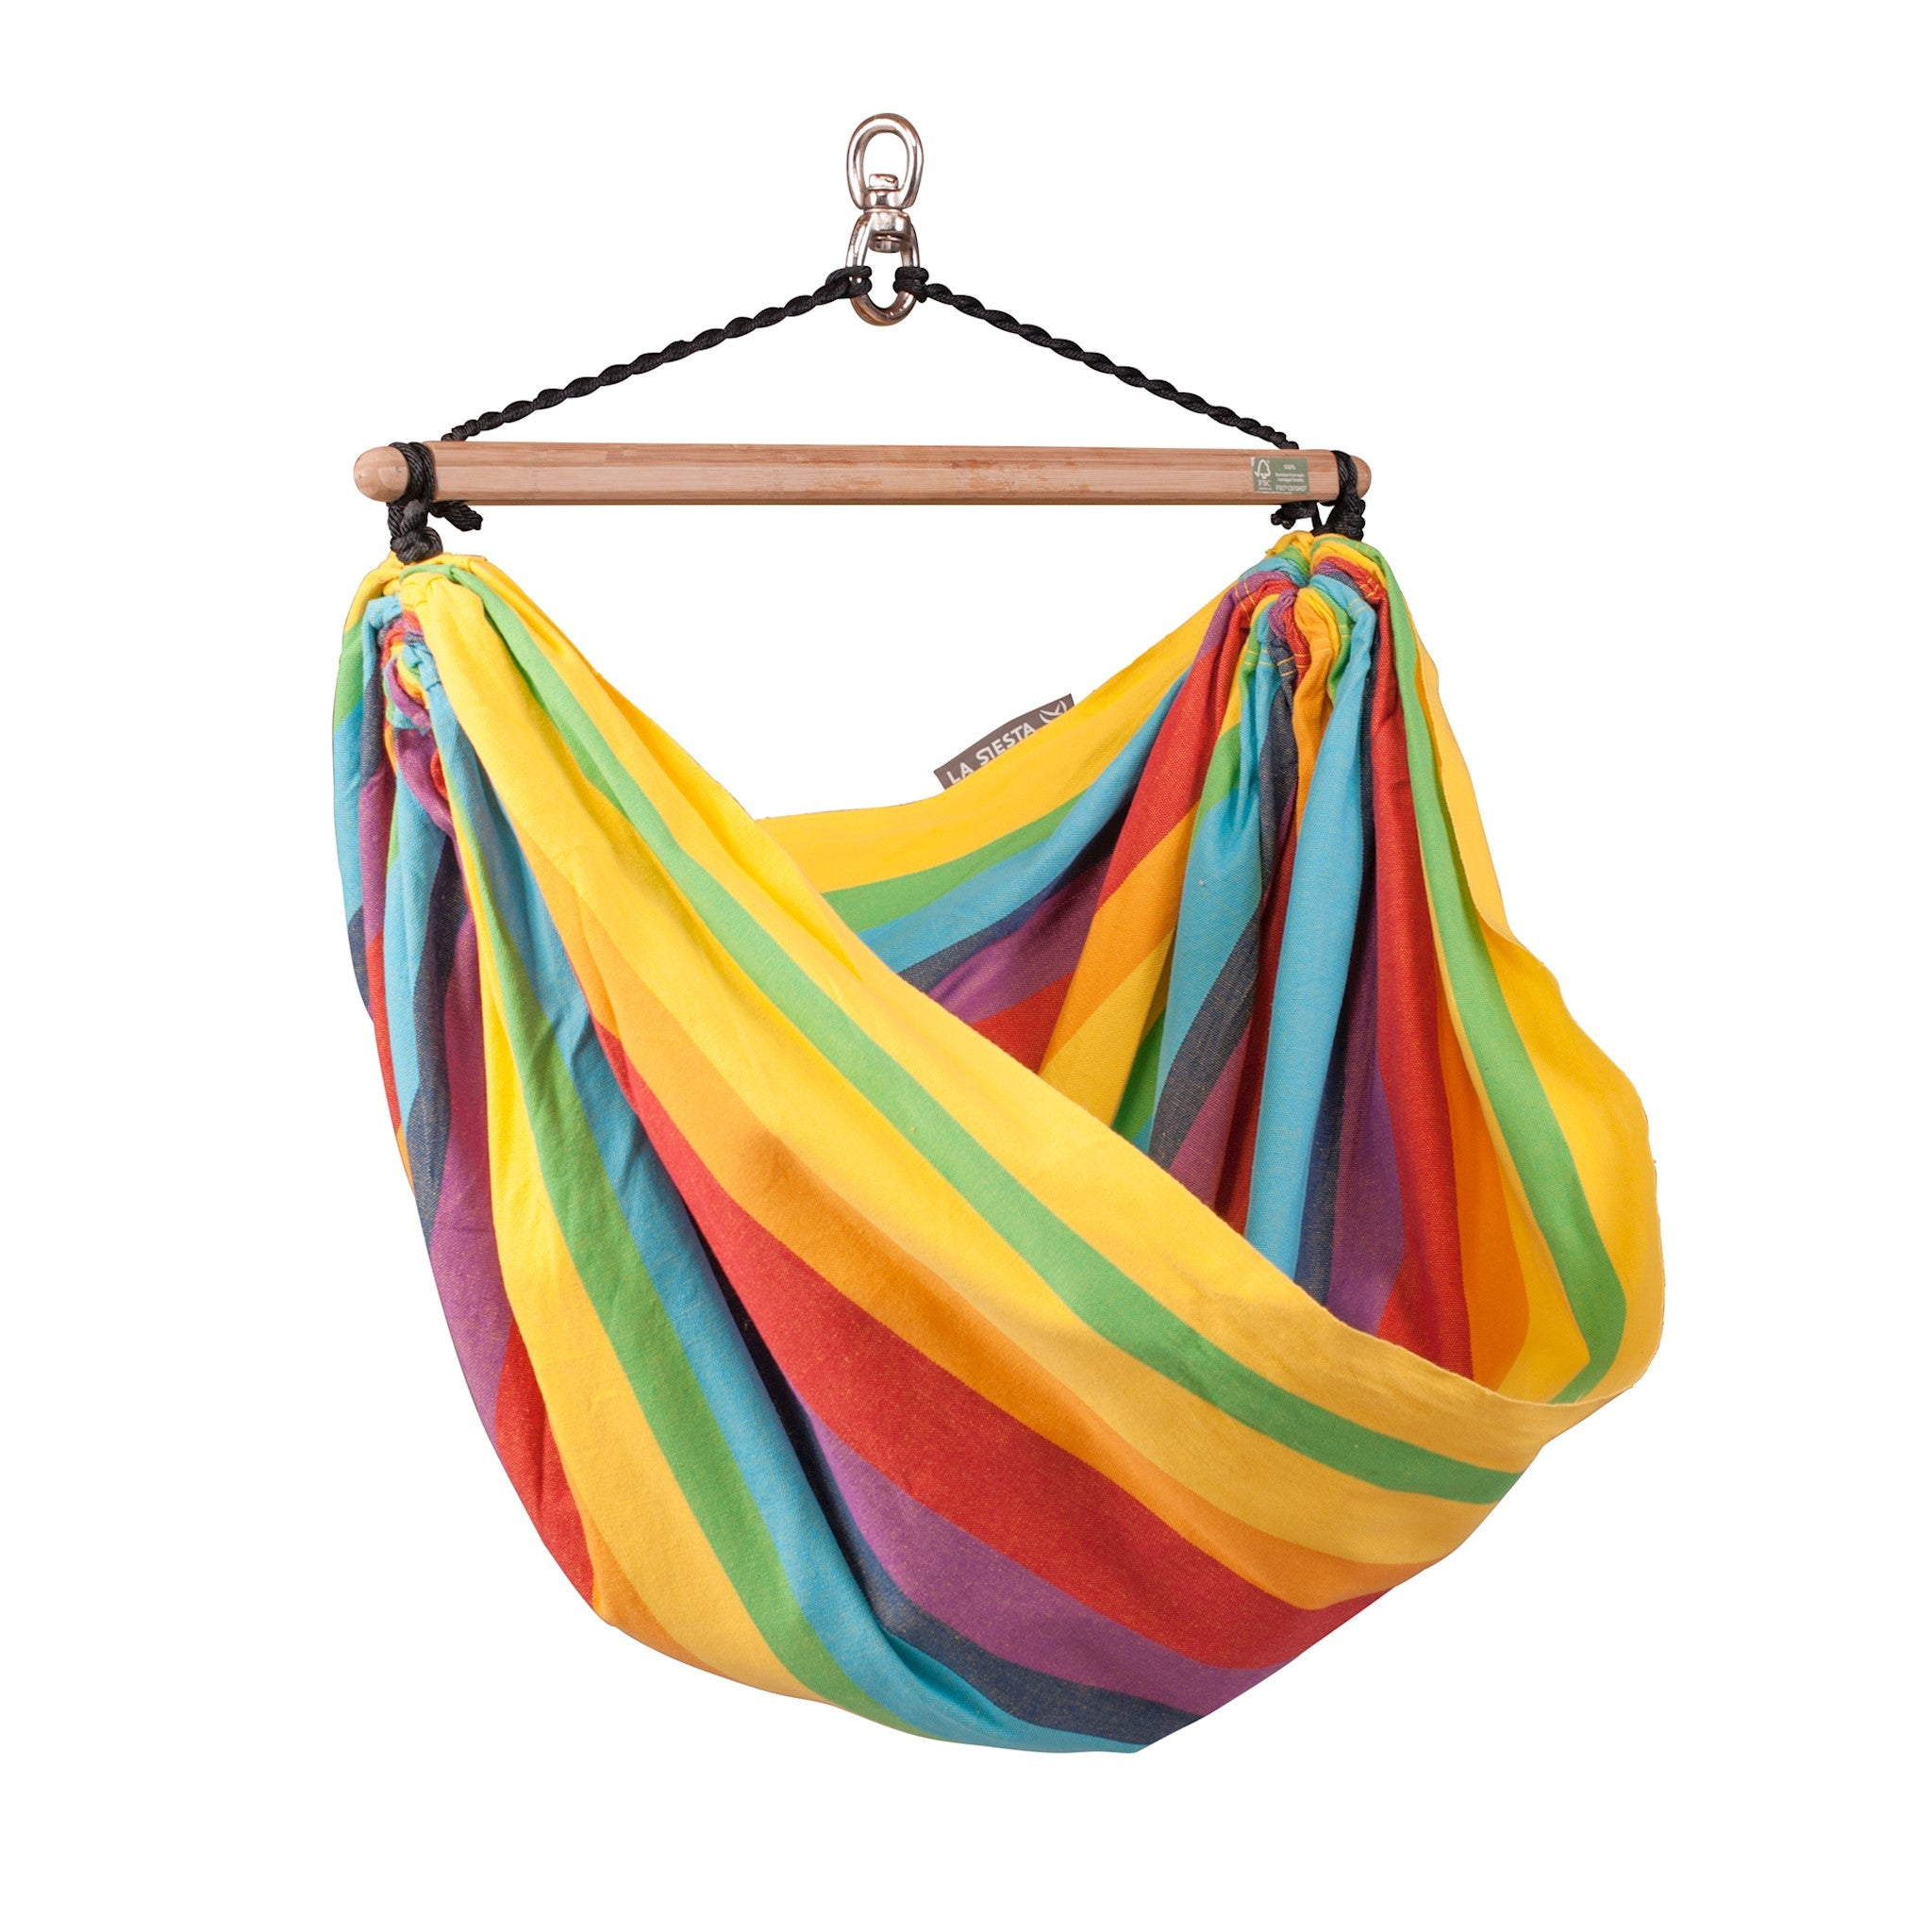 swing fixed picture amazing chair home of trends ideas and designs kids u diy furniture with stand hammock fresh astonishing pic insight